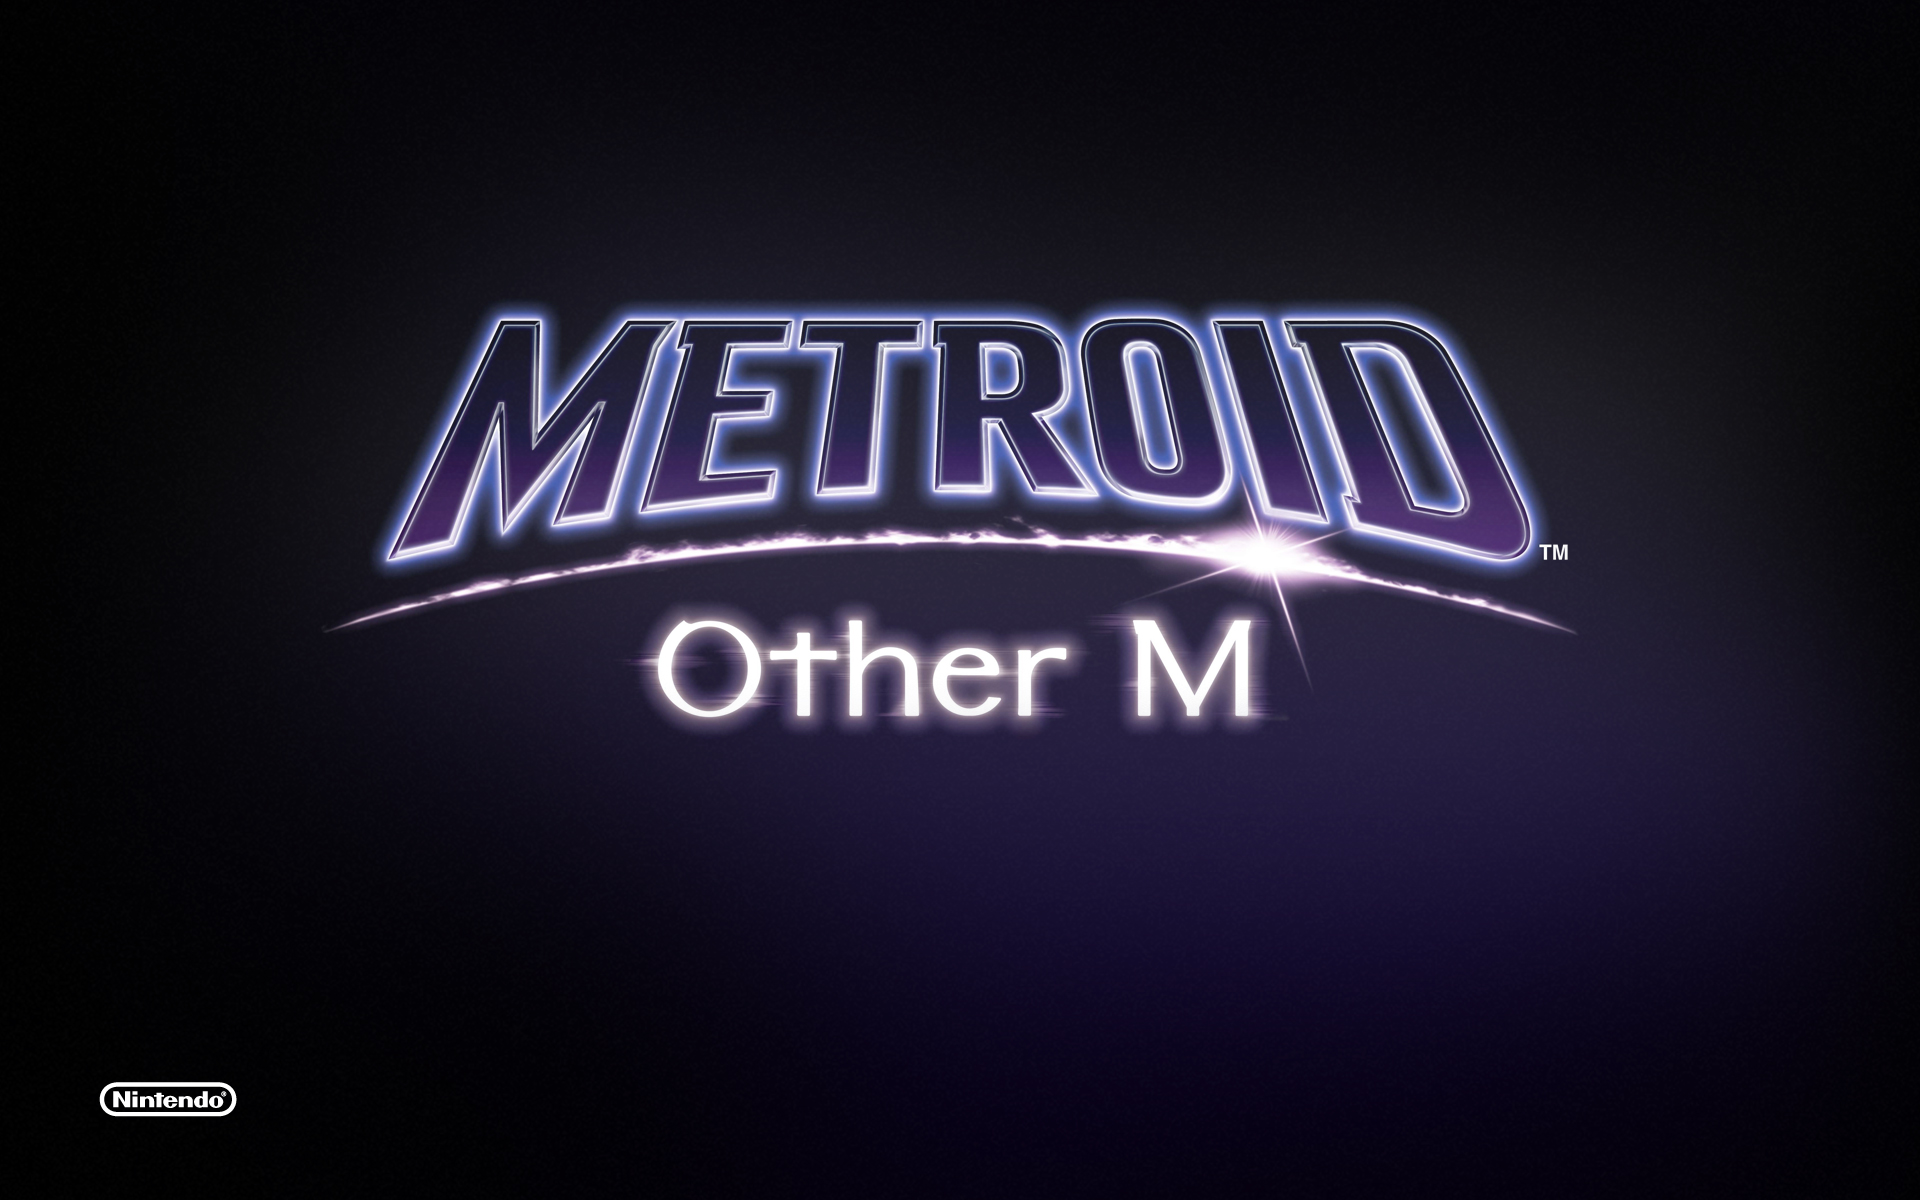 Metroid Other M Wallpaper 8